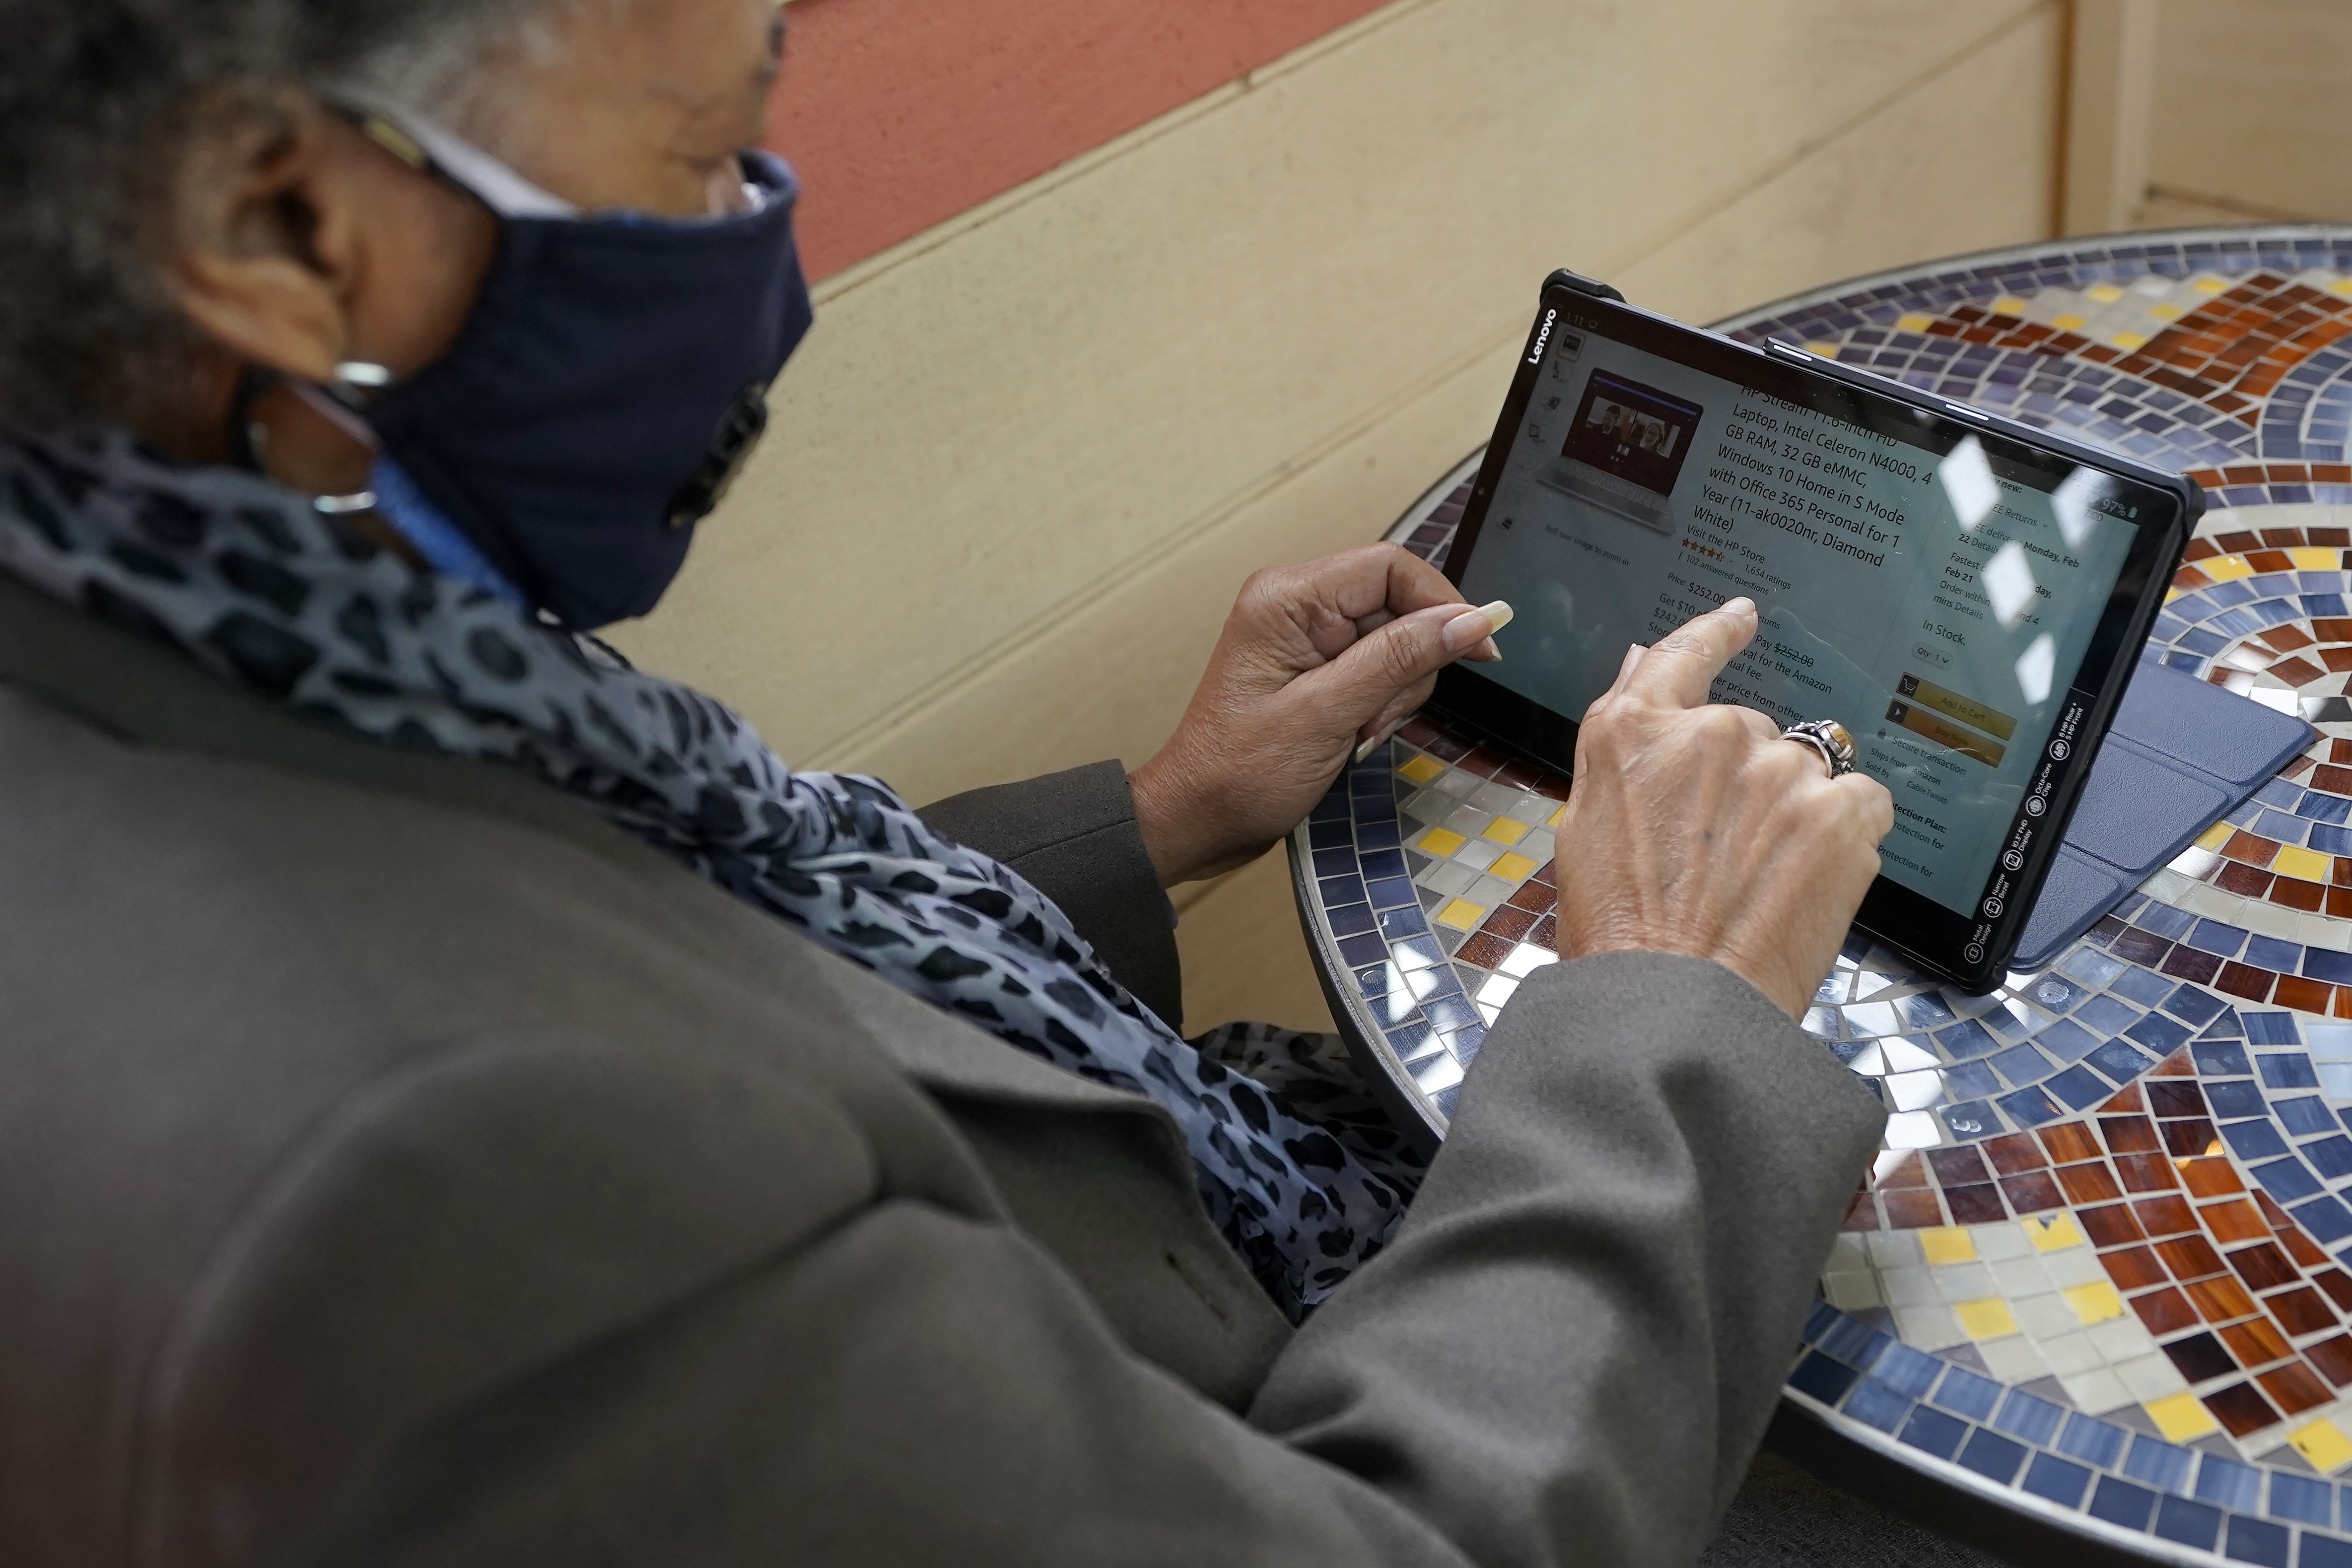 Lynnette White uses her tablet while interviewed in San Francisco, Tuesday, Feb. 16, 2021.